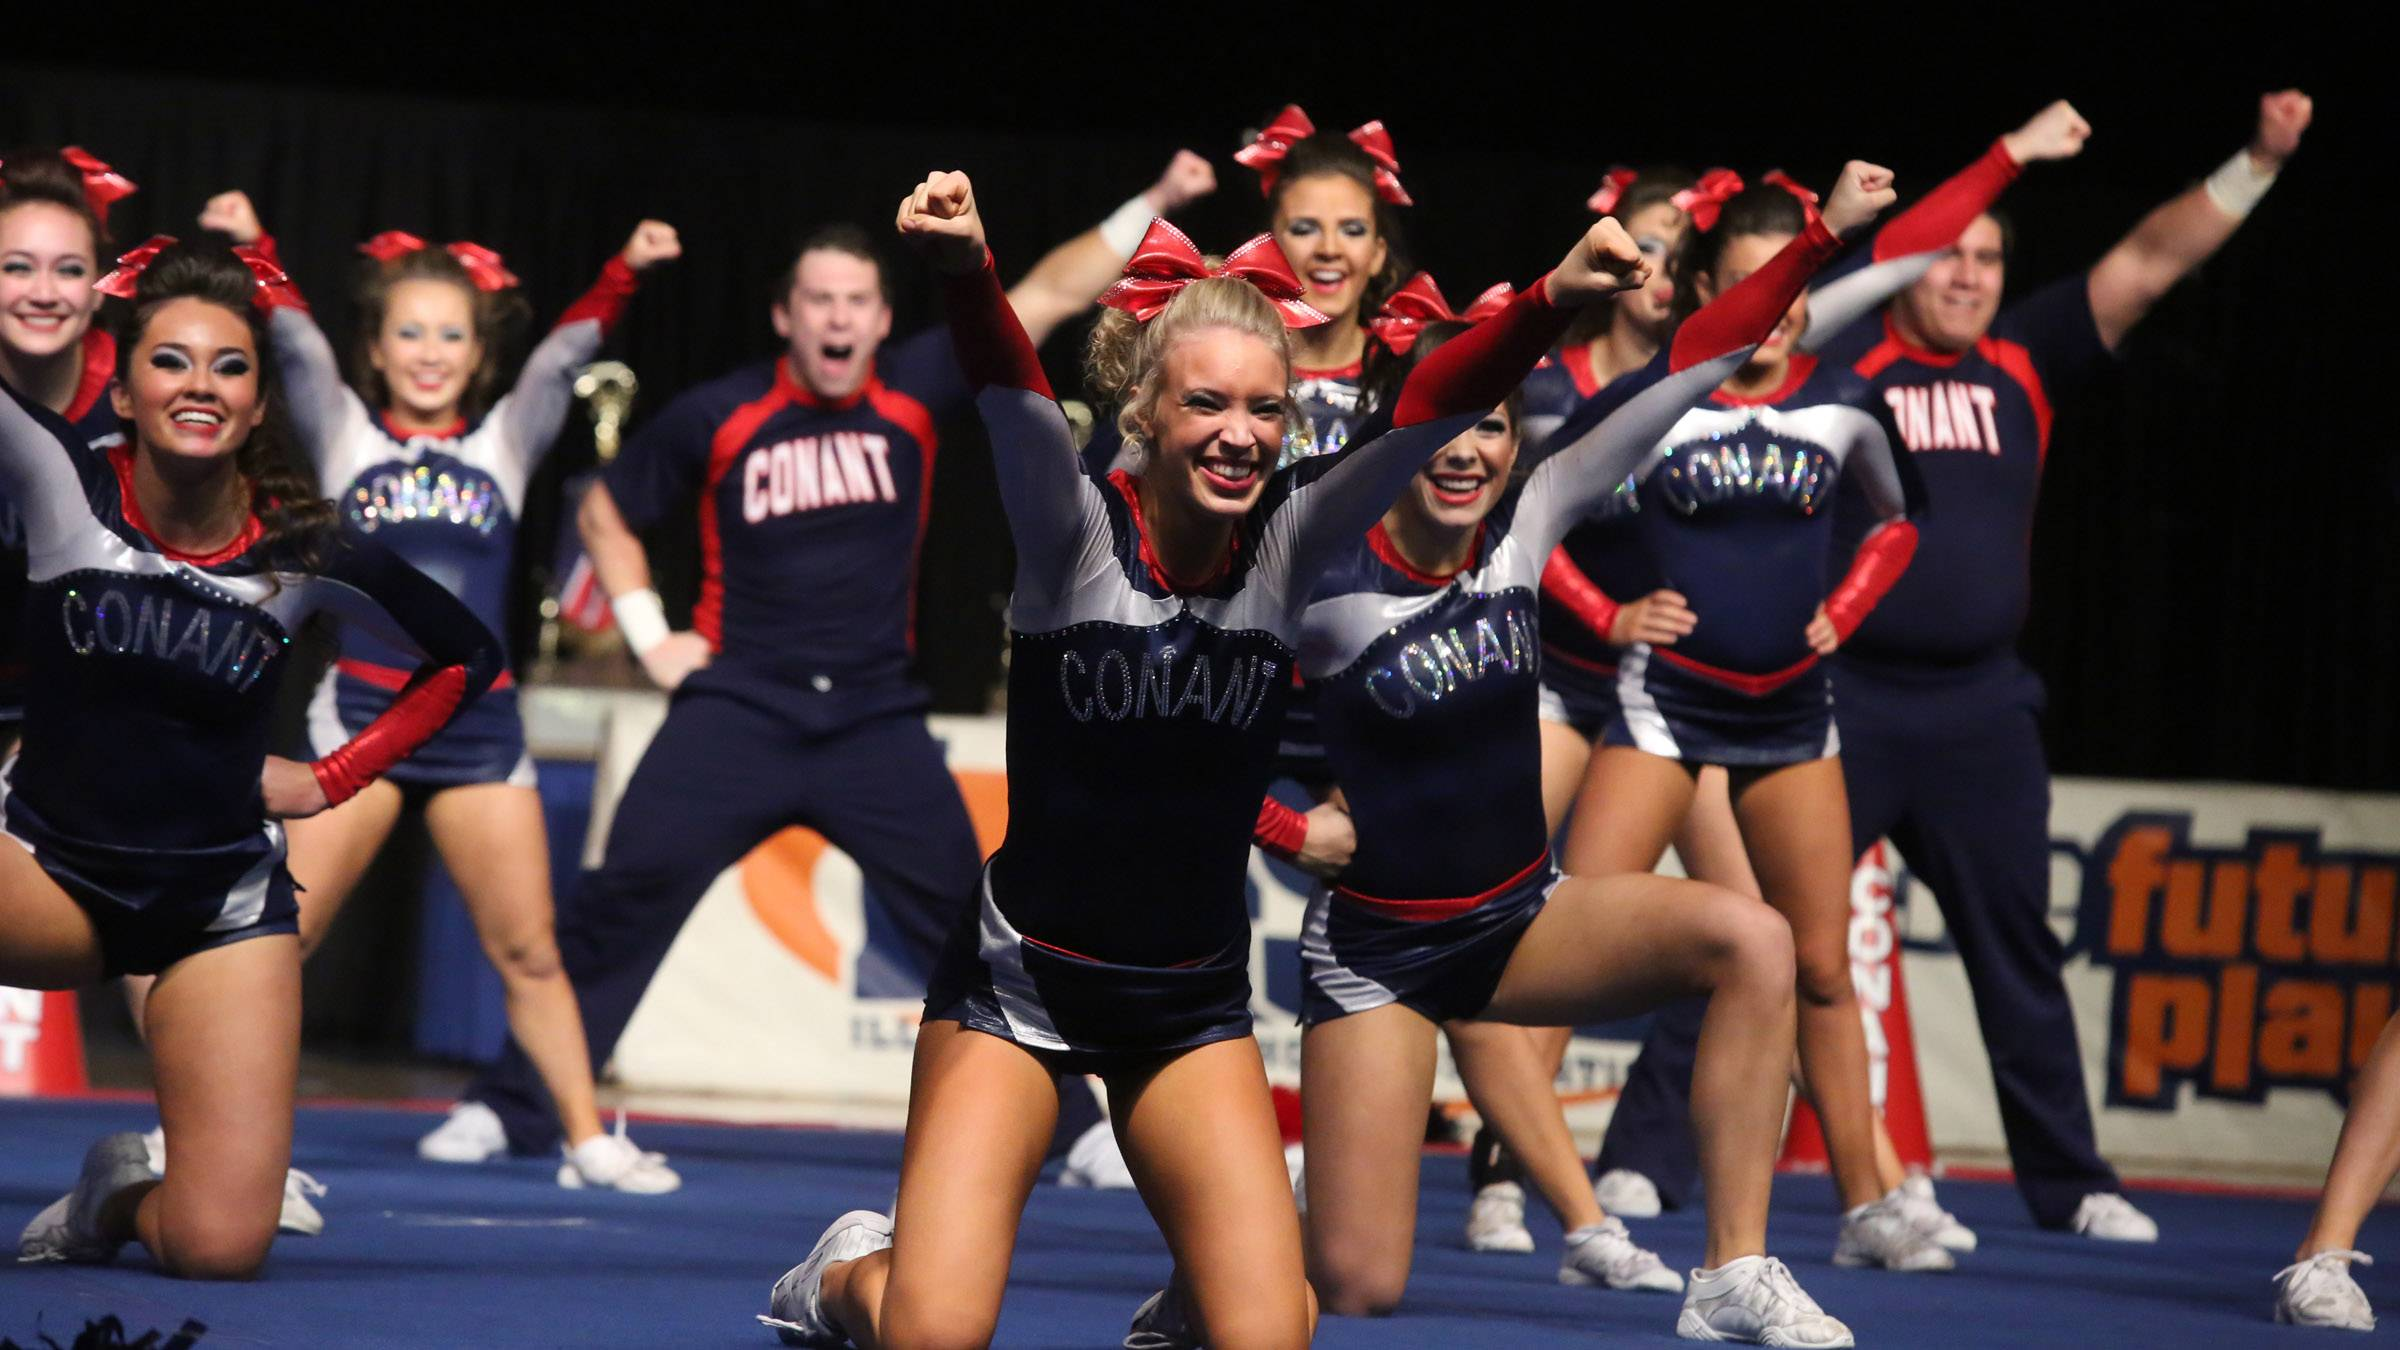 Conant High School's cheer team performs in the coed team category at the IHSA state finals on Saturday in Bloomington.